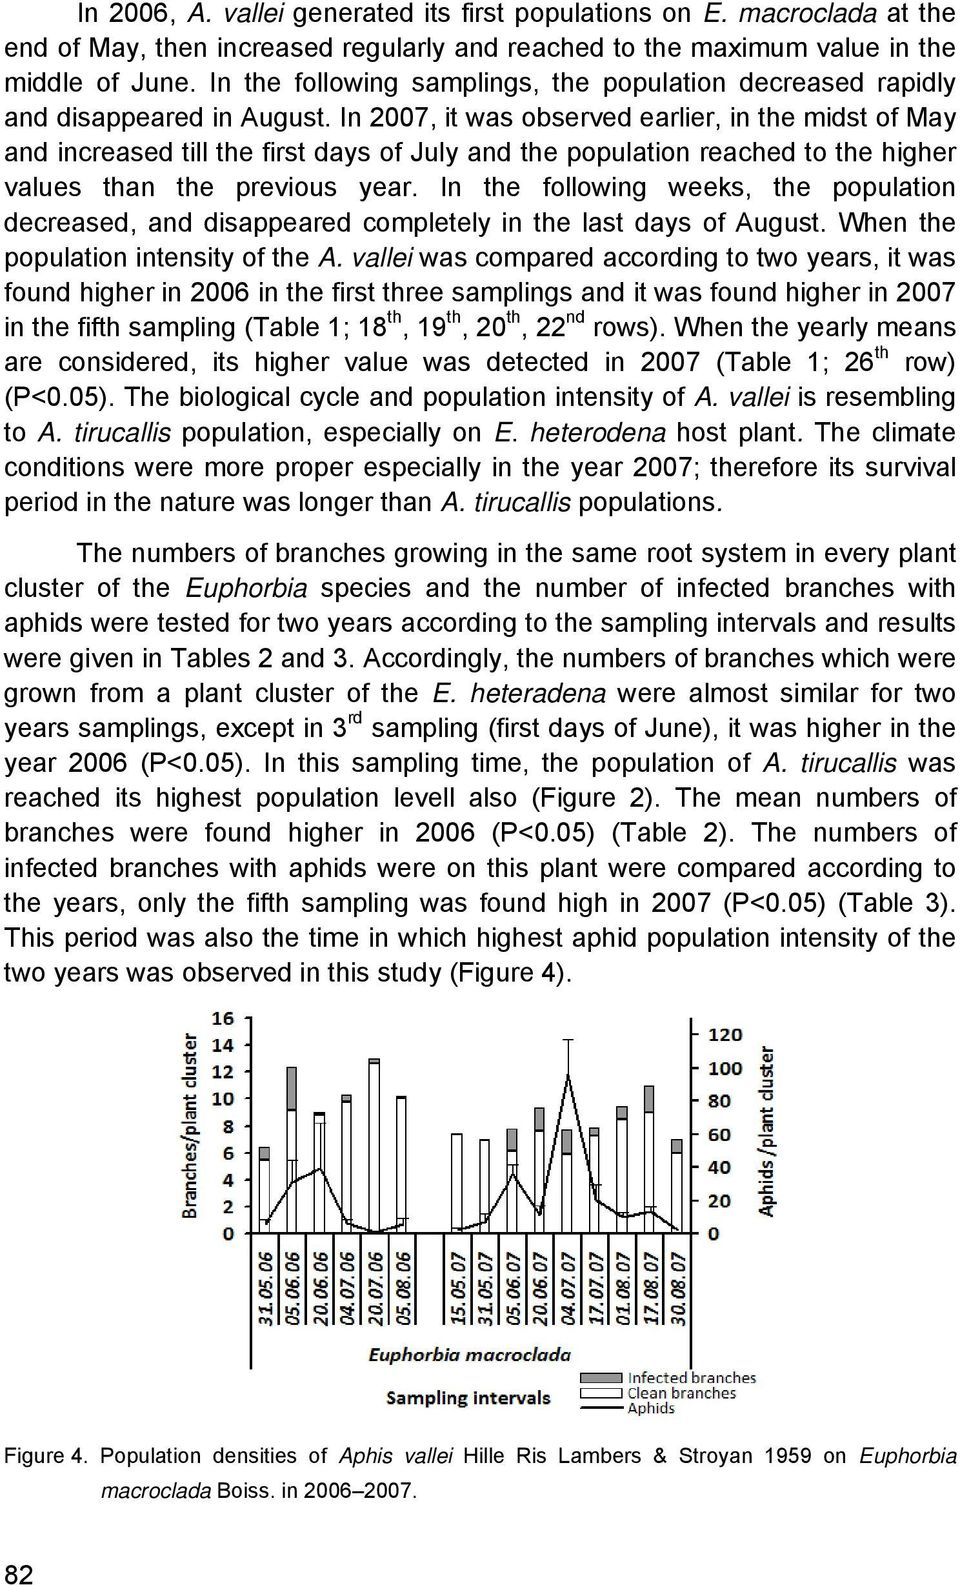 In 2007, it was observed earlier, in the midst of May and increased till the first days of July and the population reached to the higher values than the previous year.